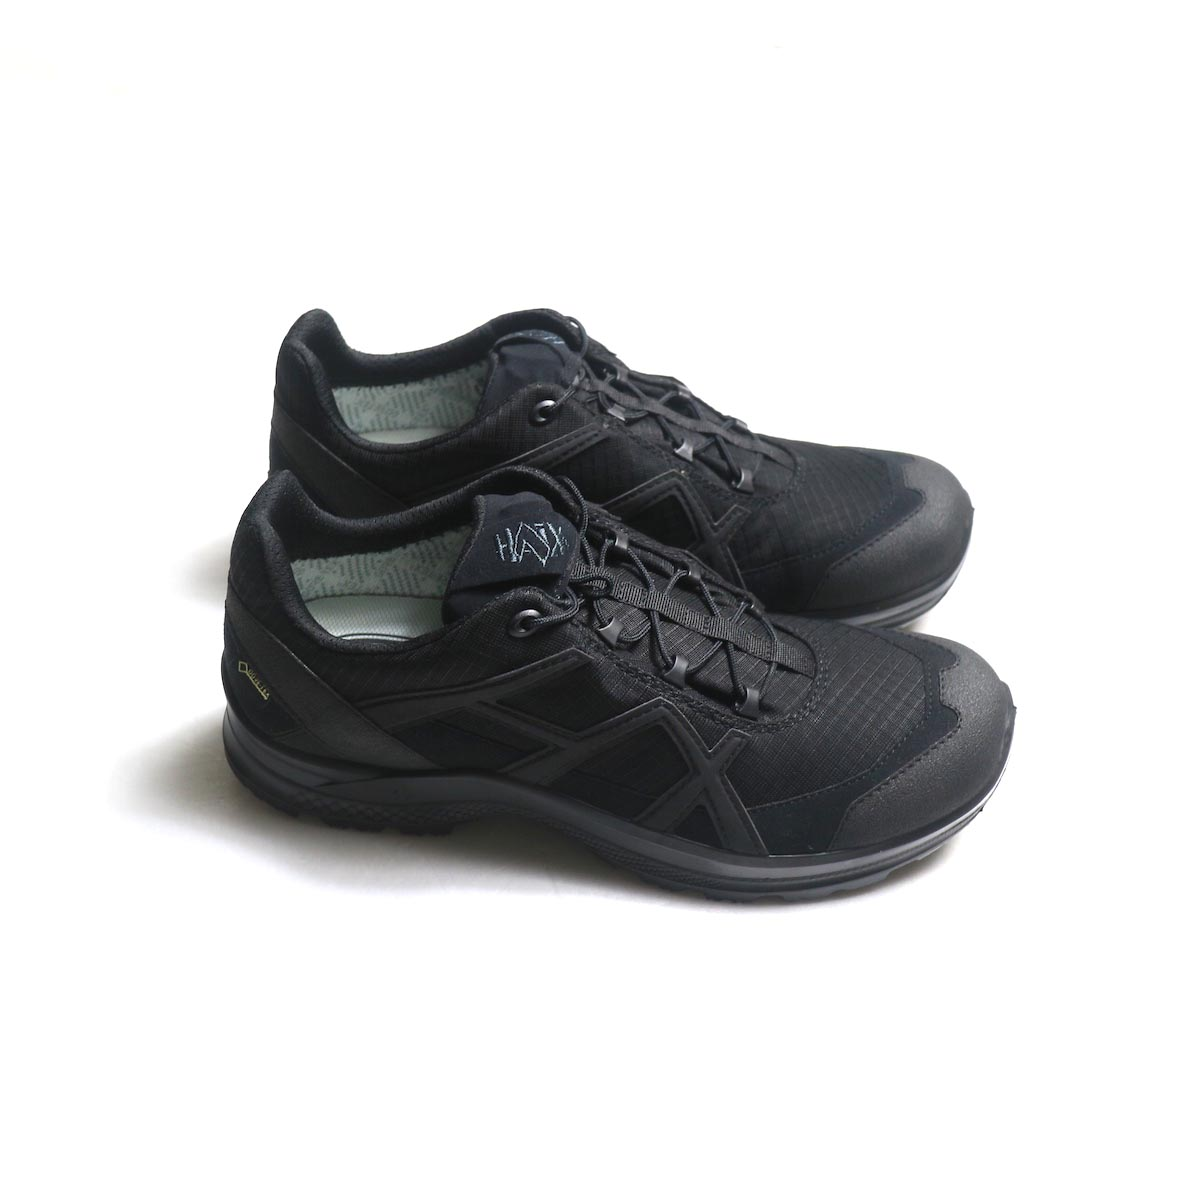 HAIX / BLACK EAGLE - ATHLETIC 2.1 GTX LOW (Black)側面